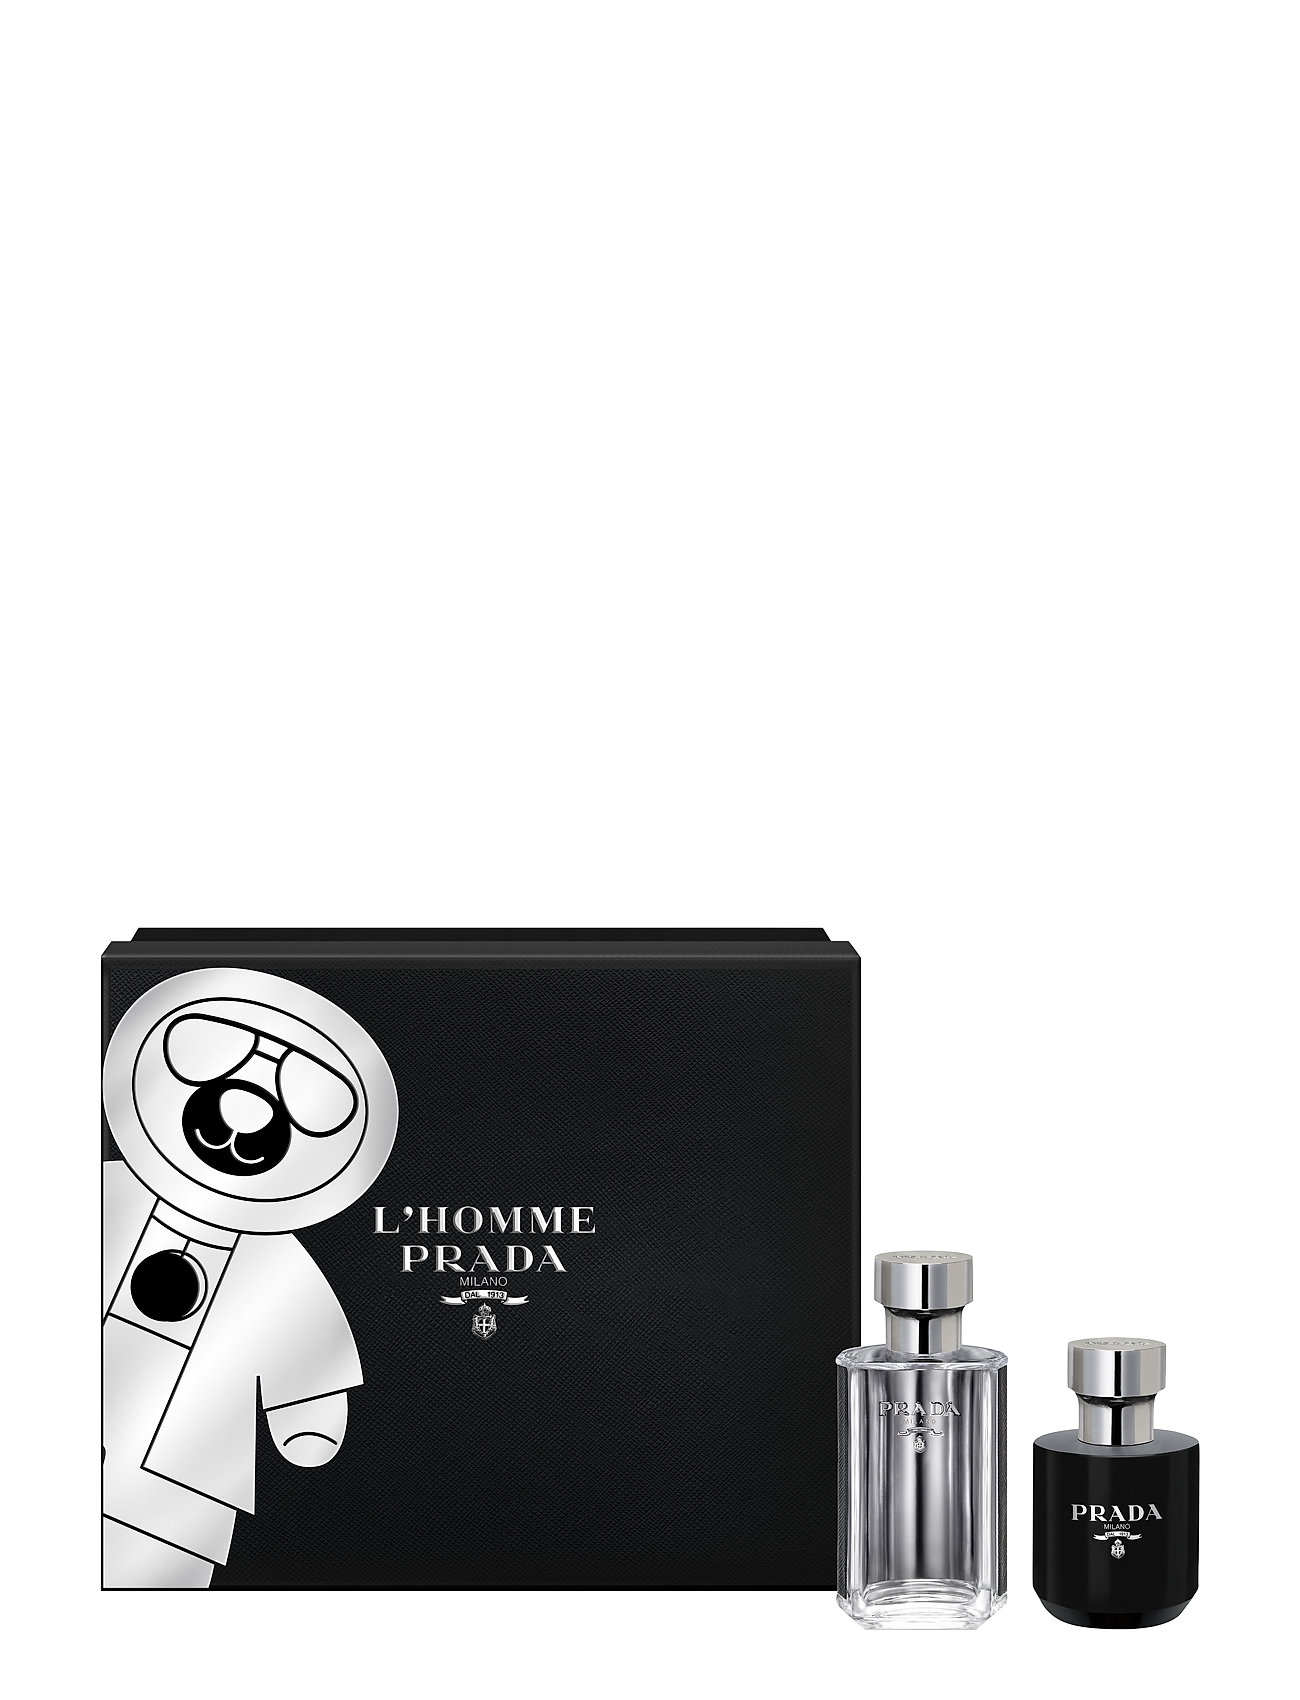 Prada L'HOMME EDT/SHOWER GEL - NO COLOR